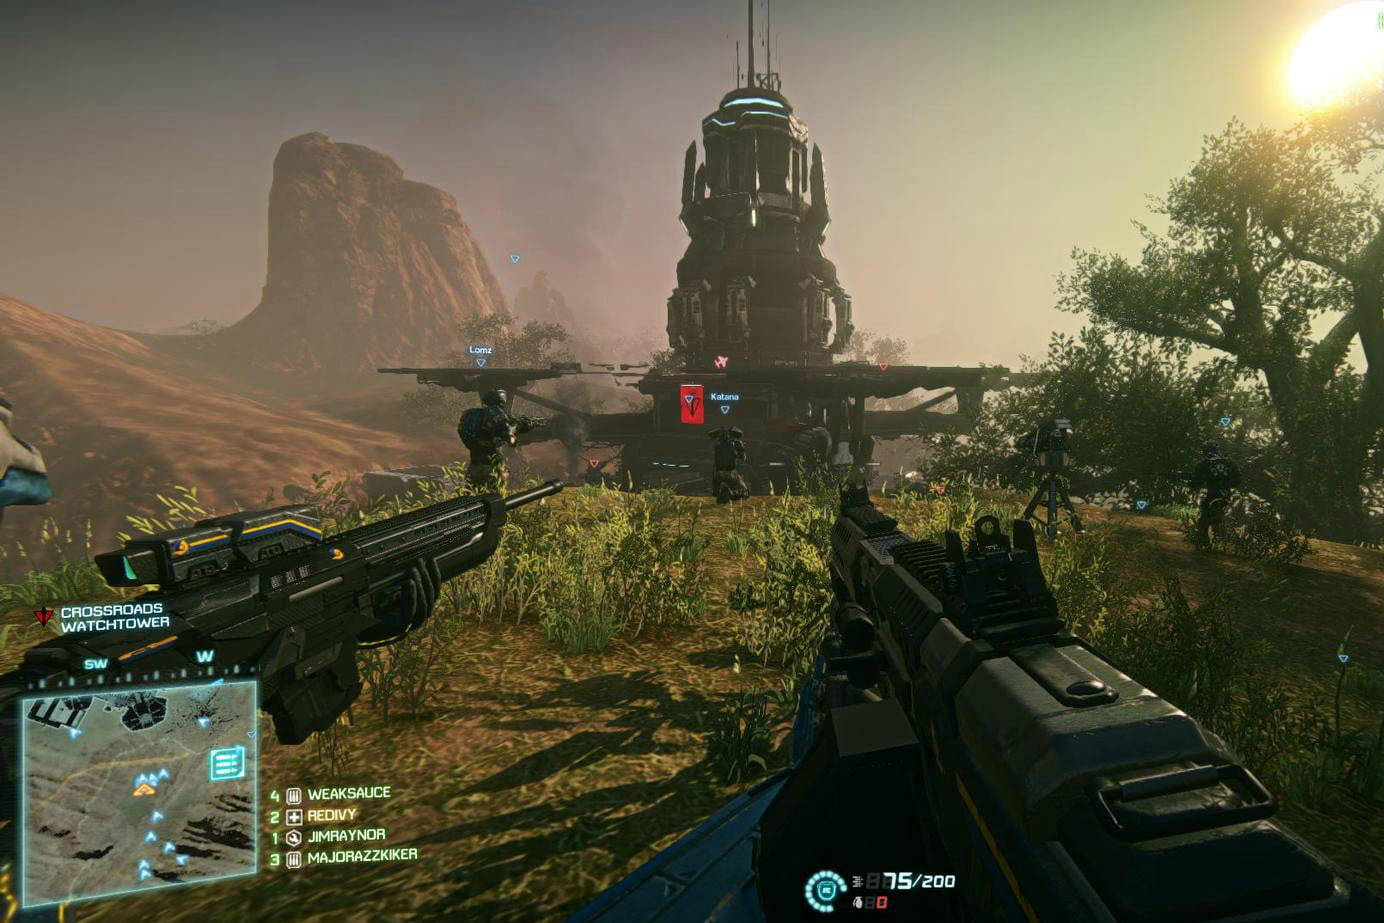 Wage war on a budget with these fun and free first-person shooters